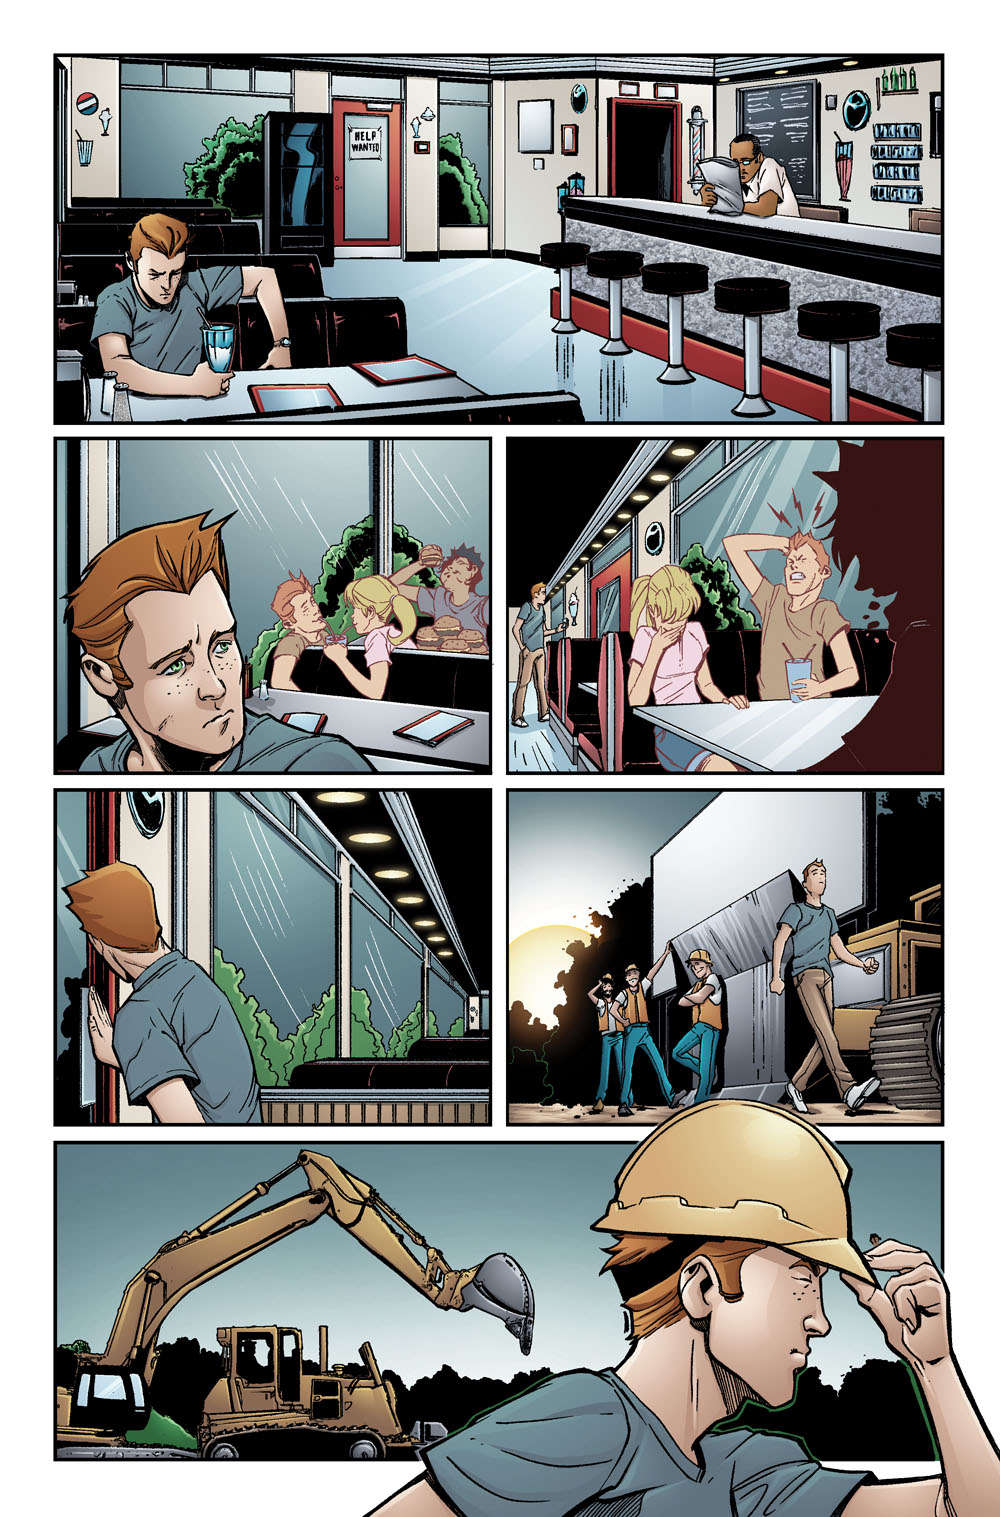 Riverdale One-Shot Preview 3 (Archie)